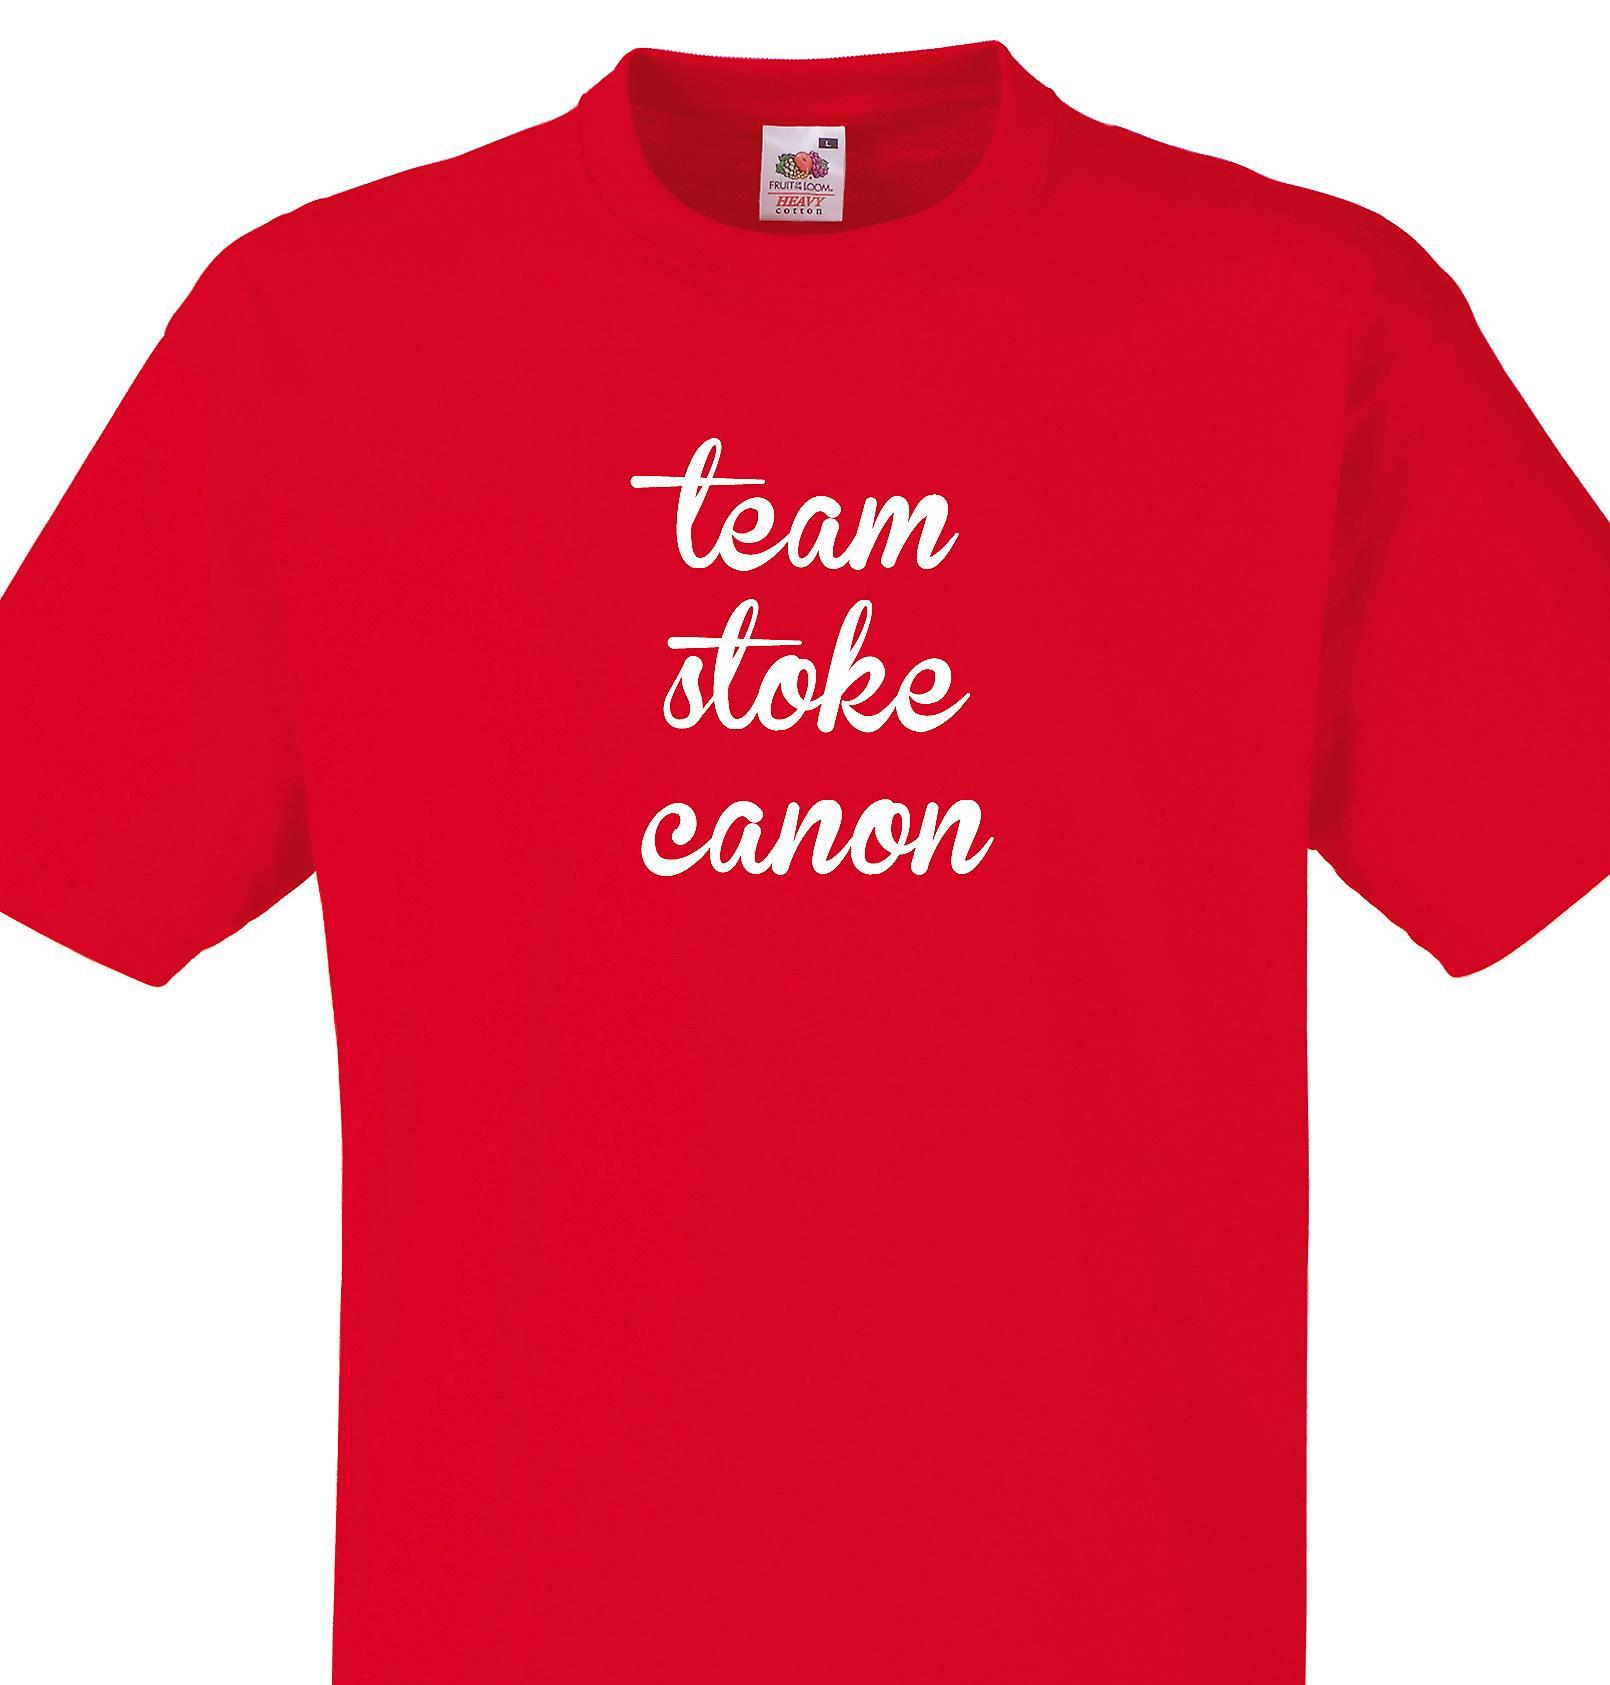 Team Stoke canon Red T shirt